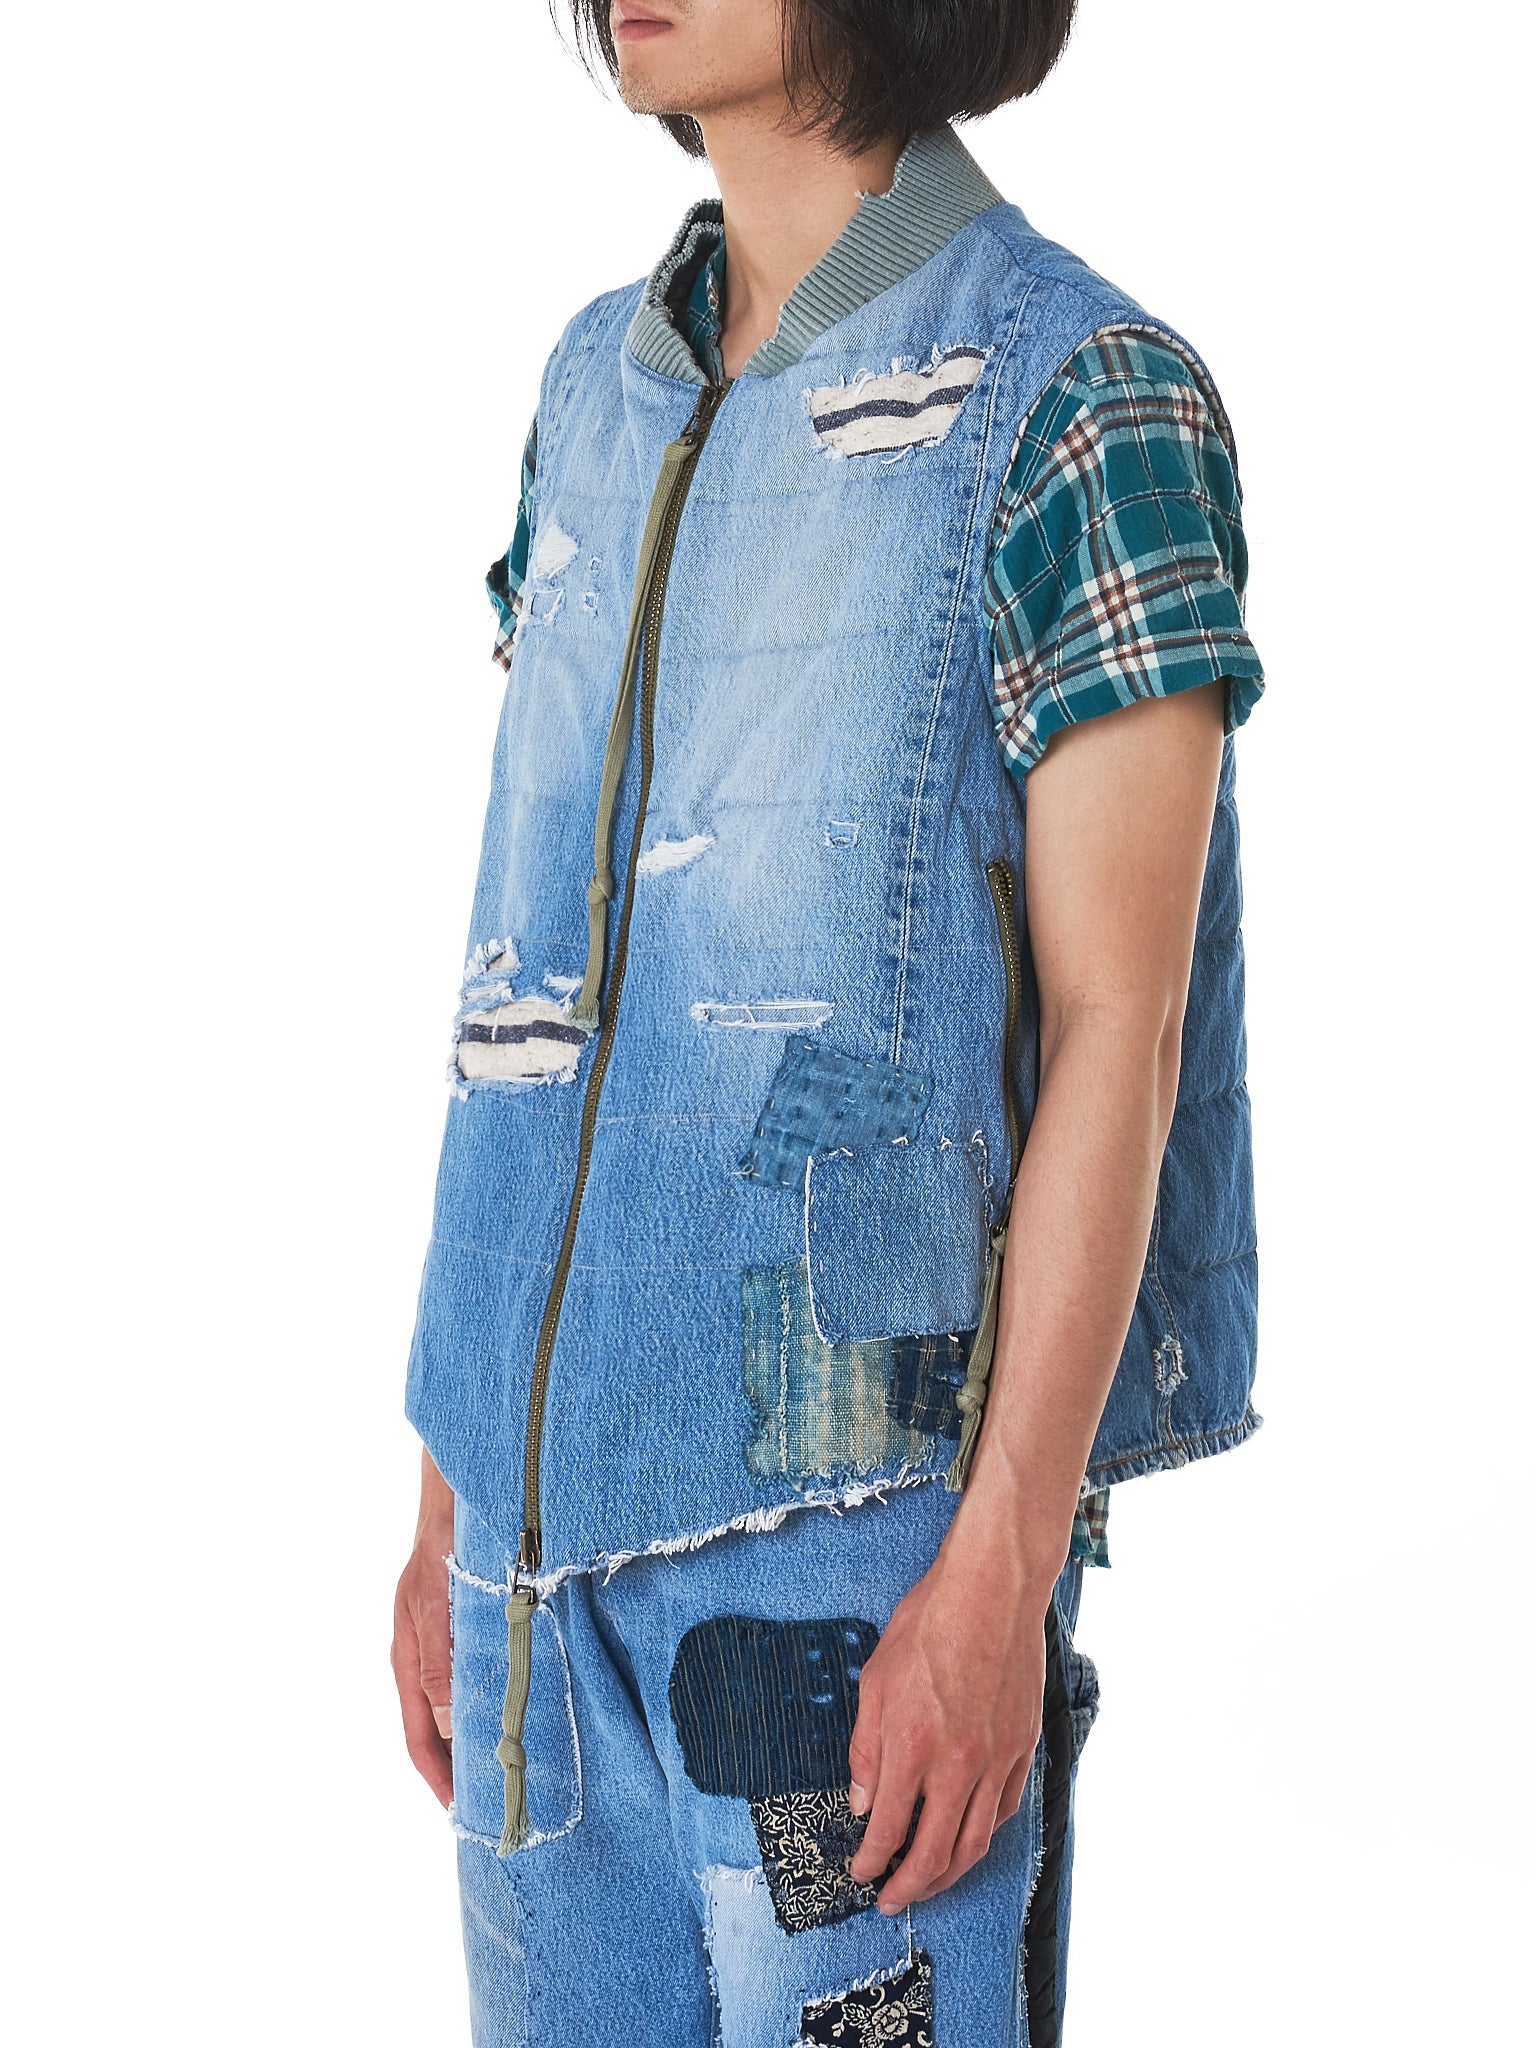 Greg Lauren Denim Vest - Hlorenzo Side